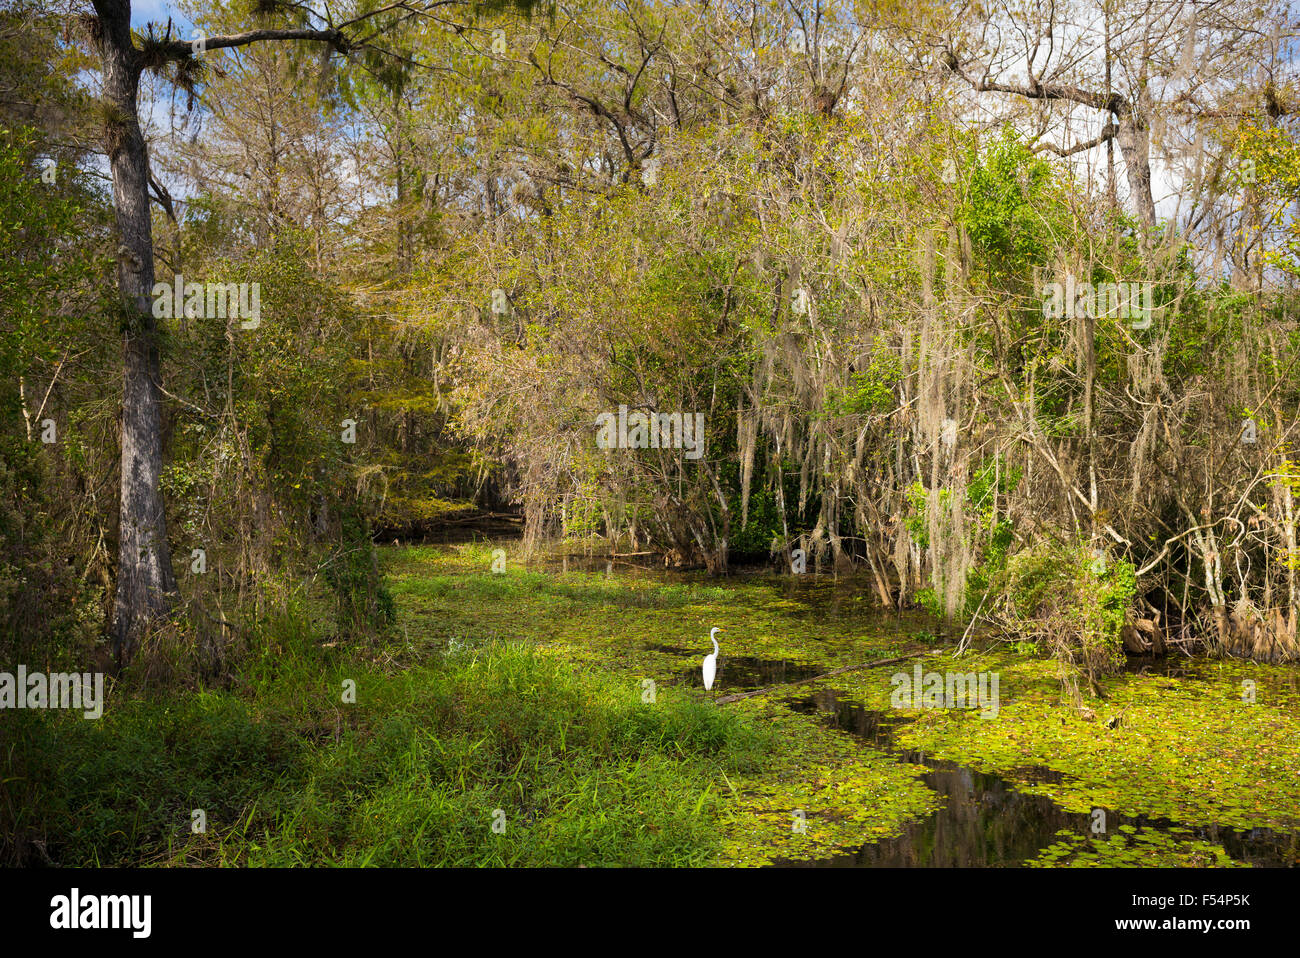 Great Egret in wetlands swamp in the Florida Everglades, United States of America - Stock Image